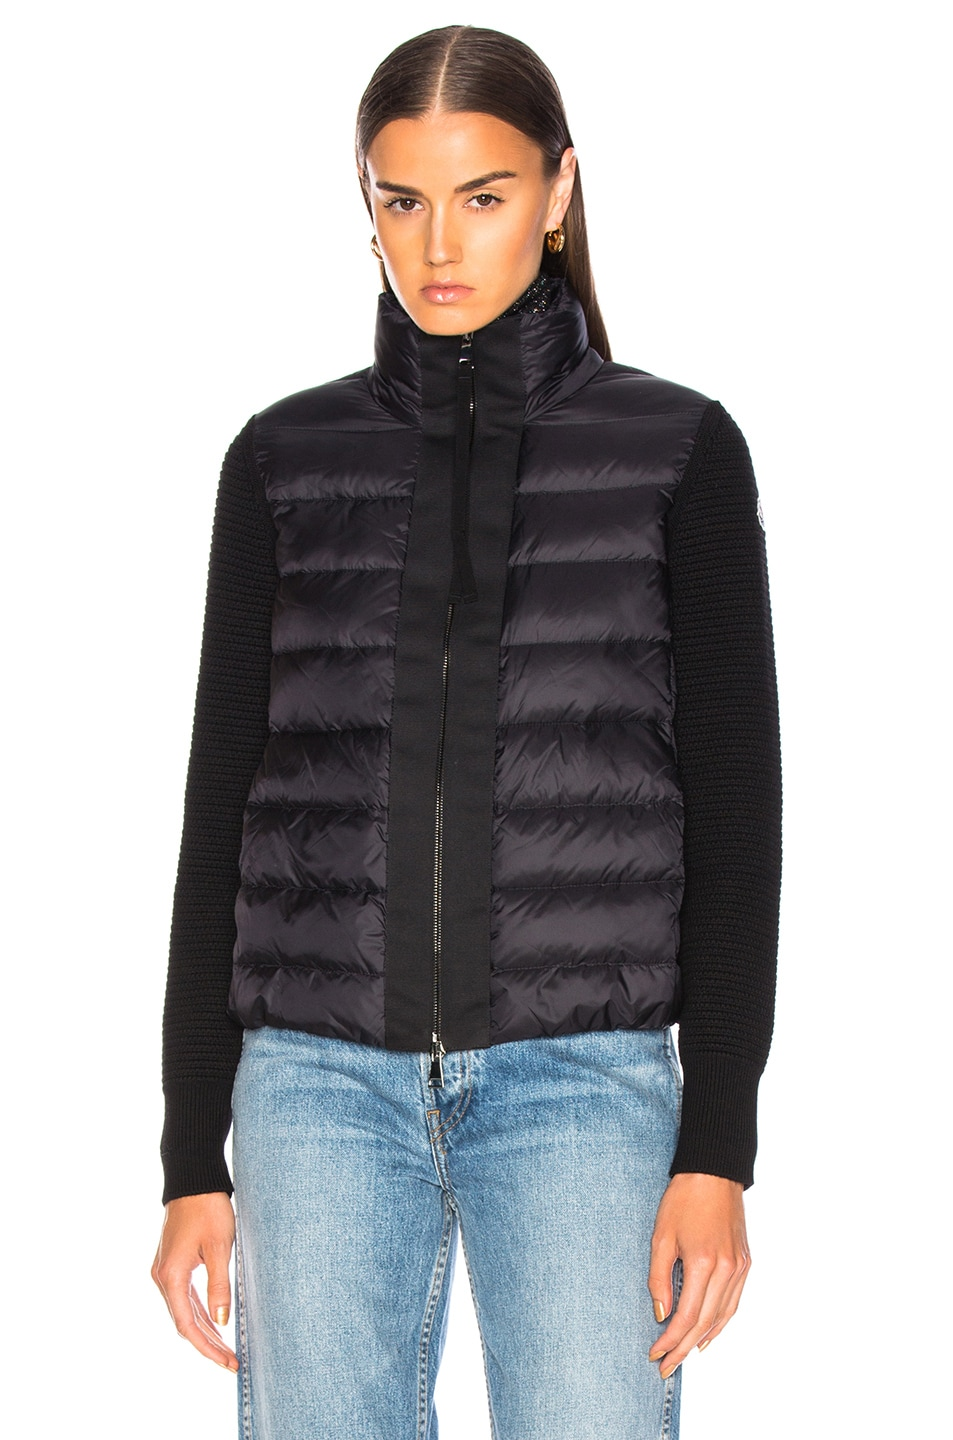 Image 2 of Moncler Maglione Tricot Cardigan in Black